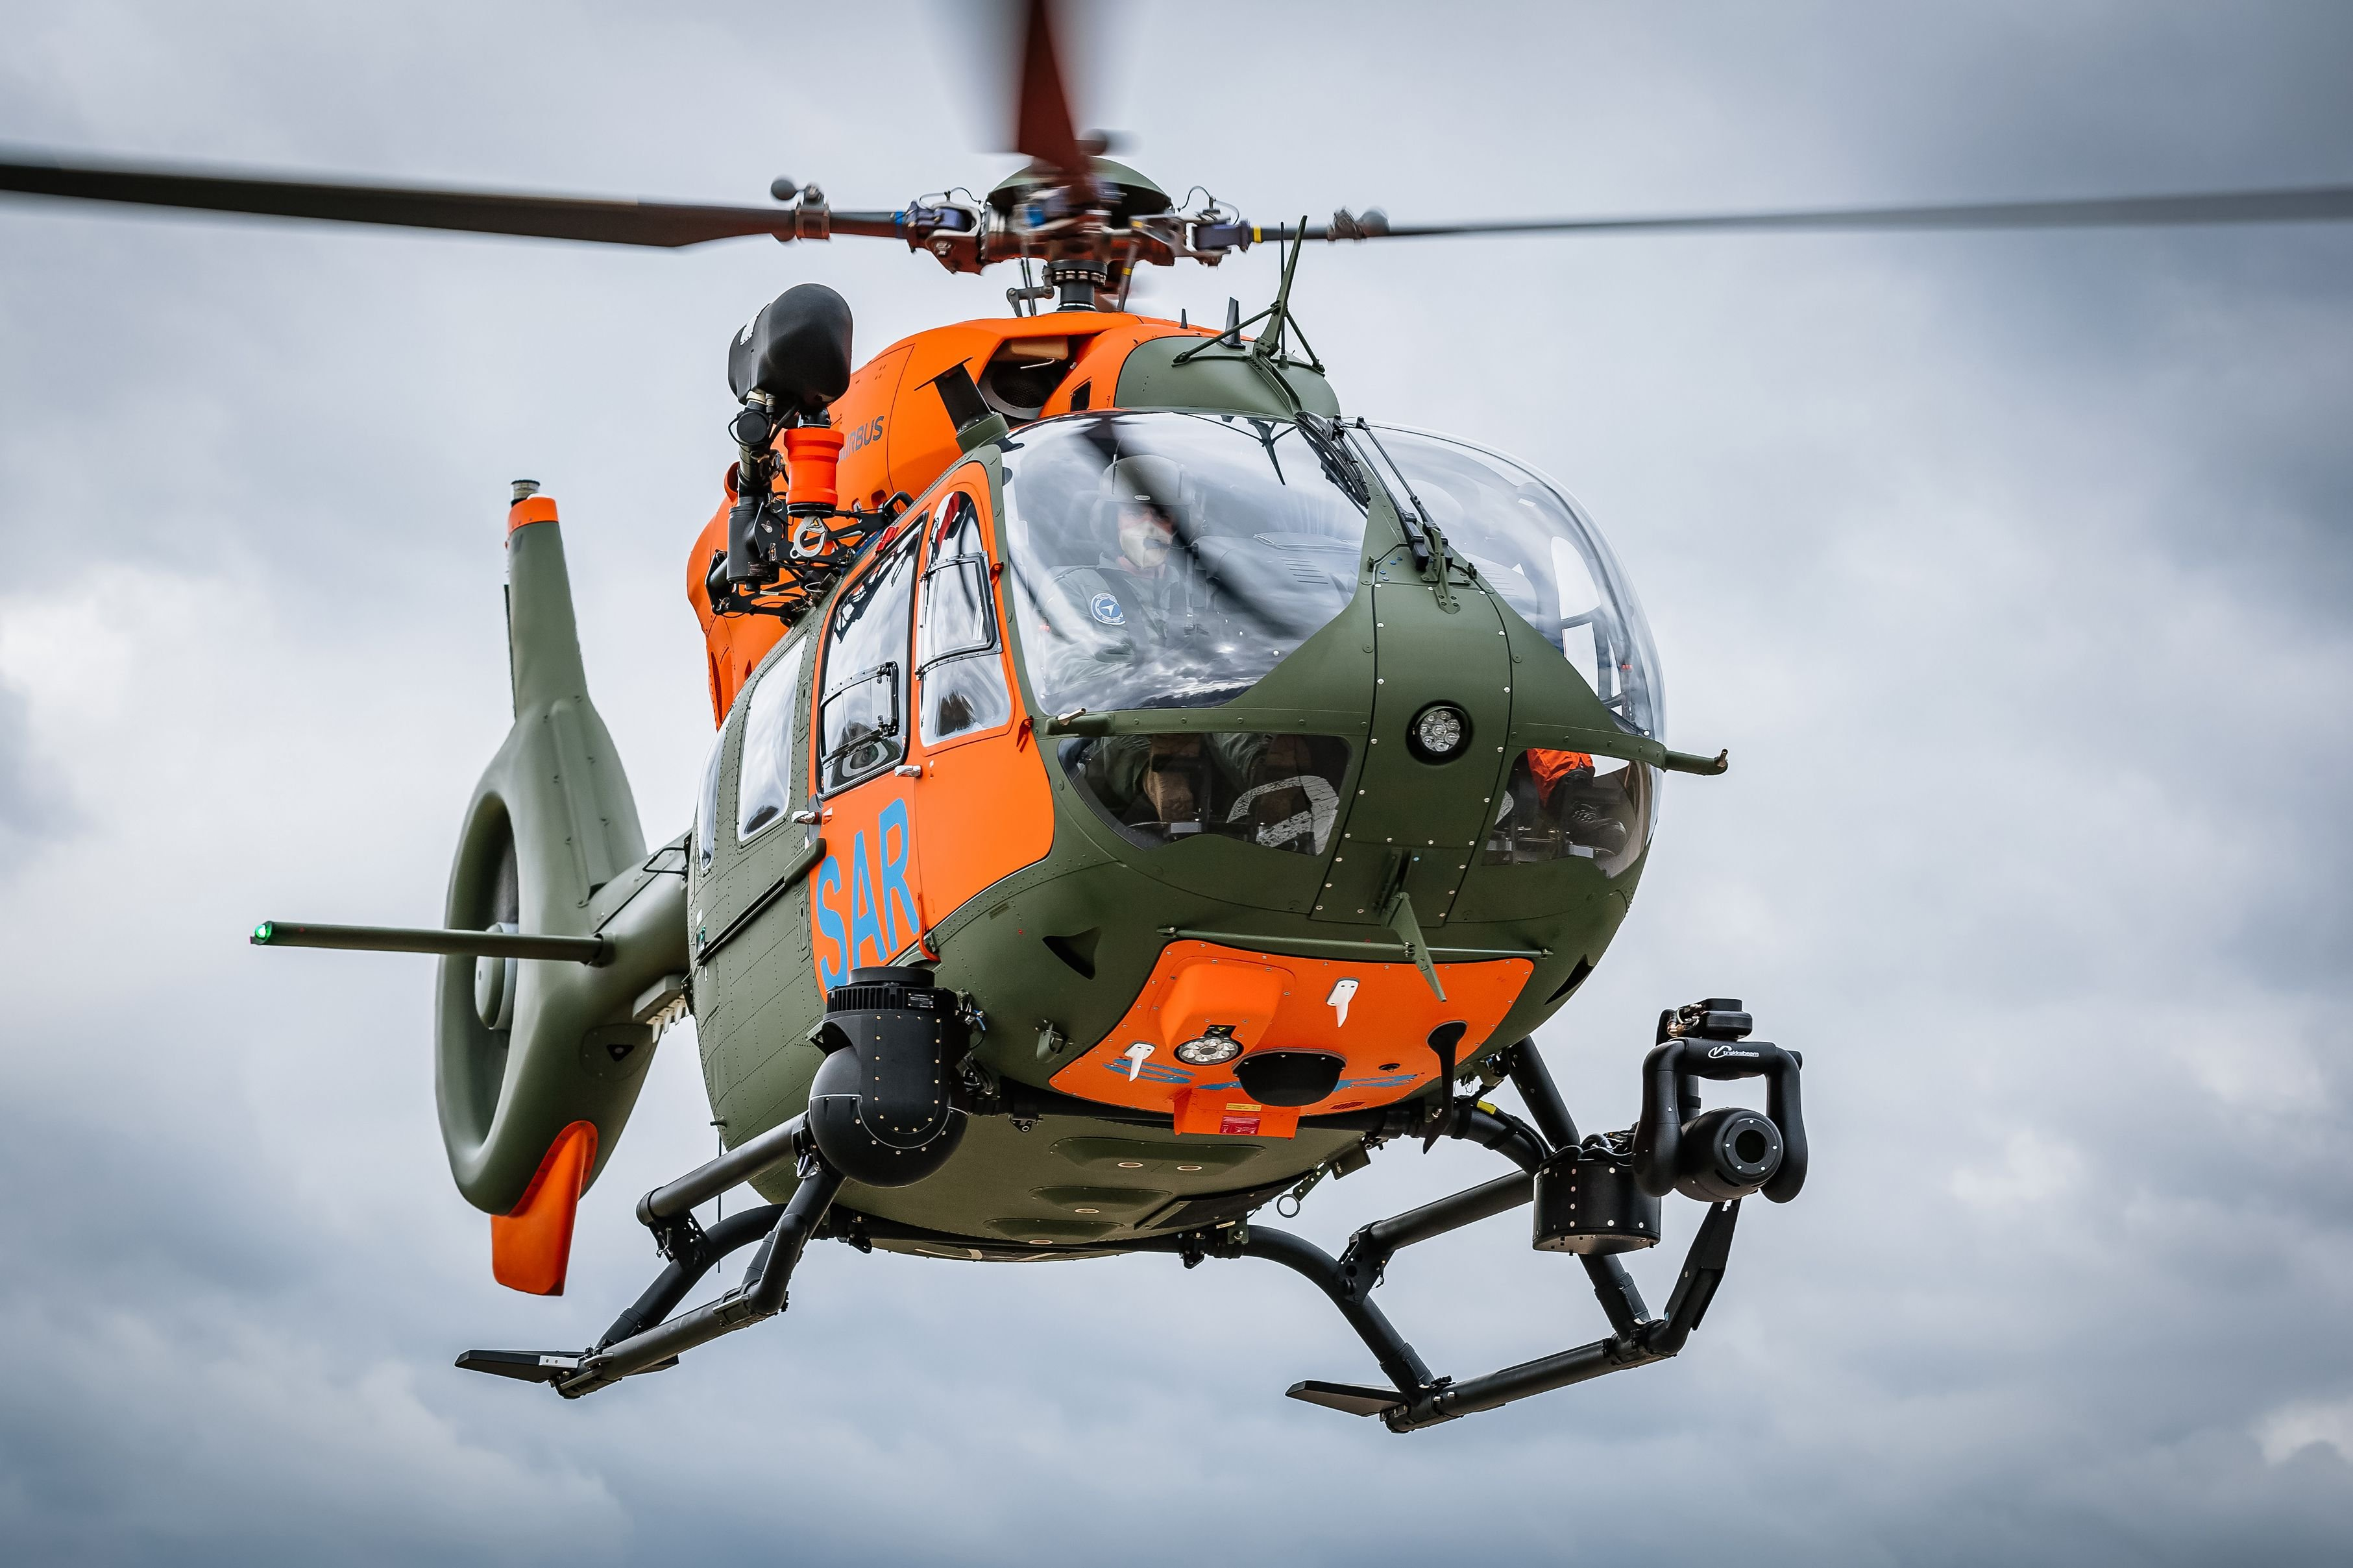 H145 SAR [Airbus Helicopters]